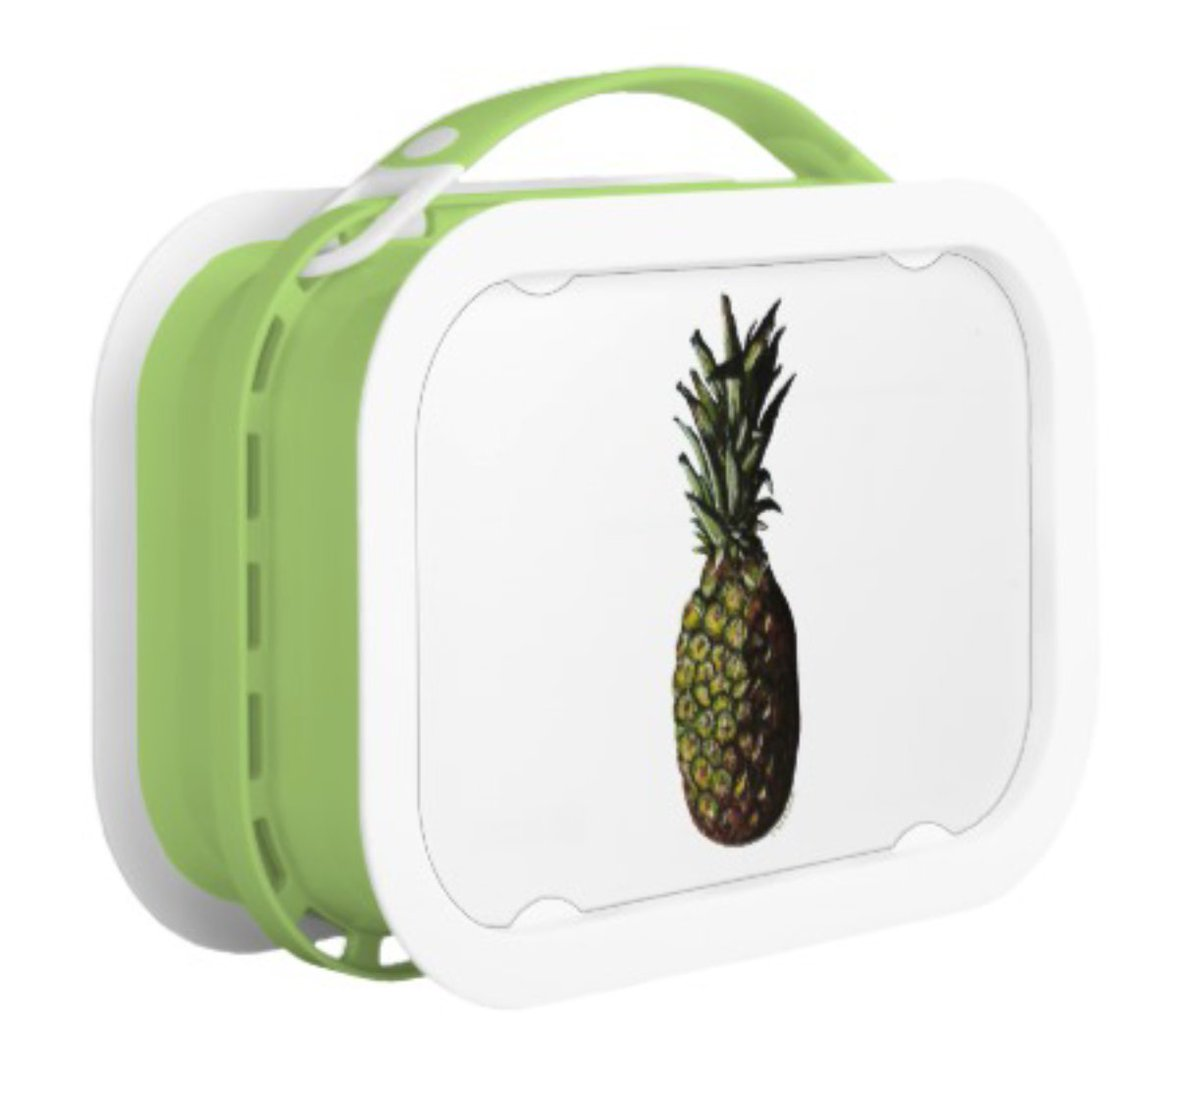 Check out these Yubo #lunch boxes featuring my #art, #Pineapple - #Designs I&II.   https://www. zazzle.com/s/tinamdimas+l unch+boxes?dp=252698347544785223  …   #schoollunches #foodart #giftidea #artforsale #iloveart #tropical<br>http://pic.twitter.com/4R1D6fp4oN